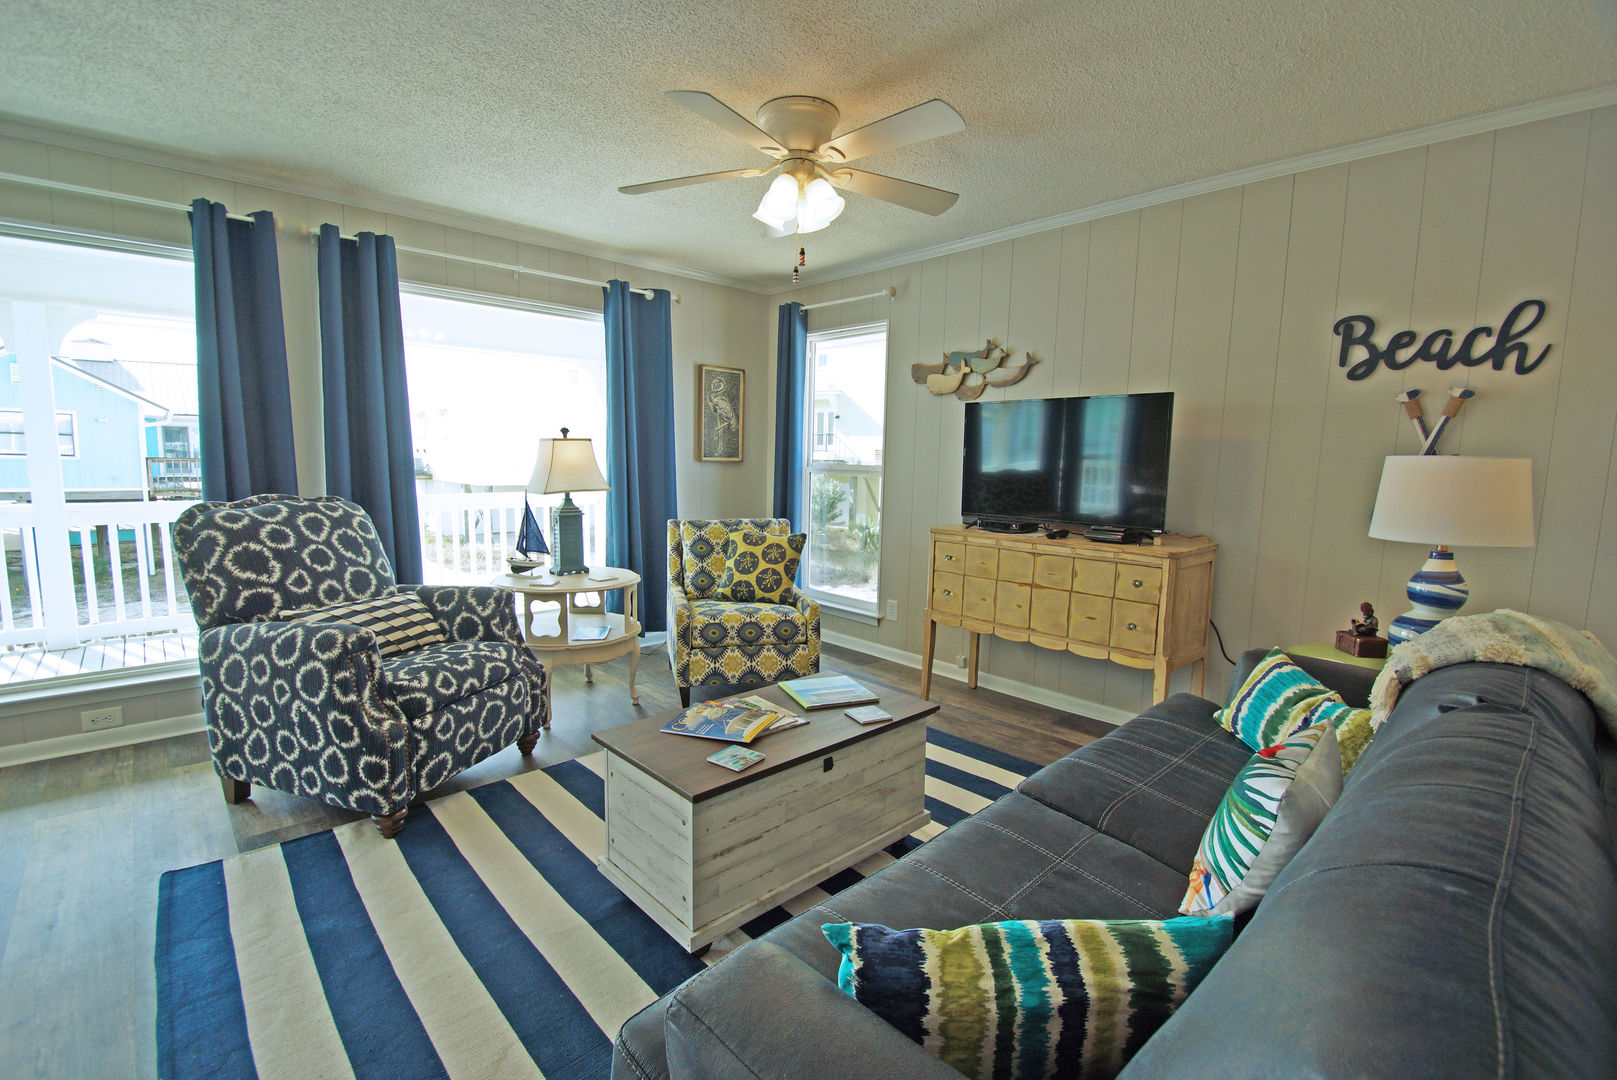 Arm Chairs, Side Table, Coffee Table, TV, Sofa, and Ceiling Fan.